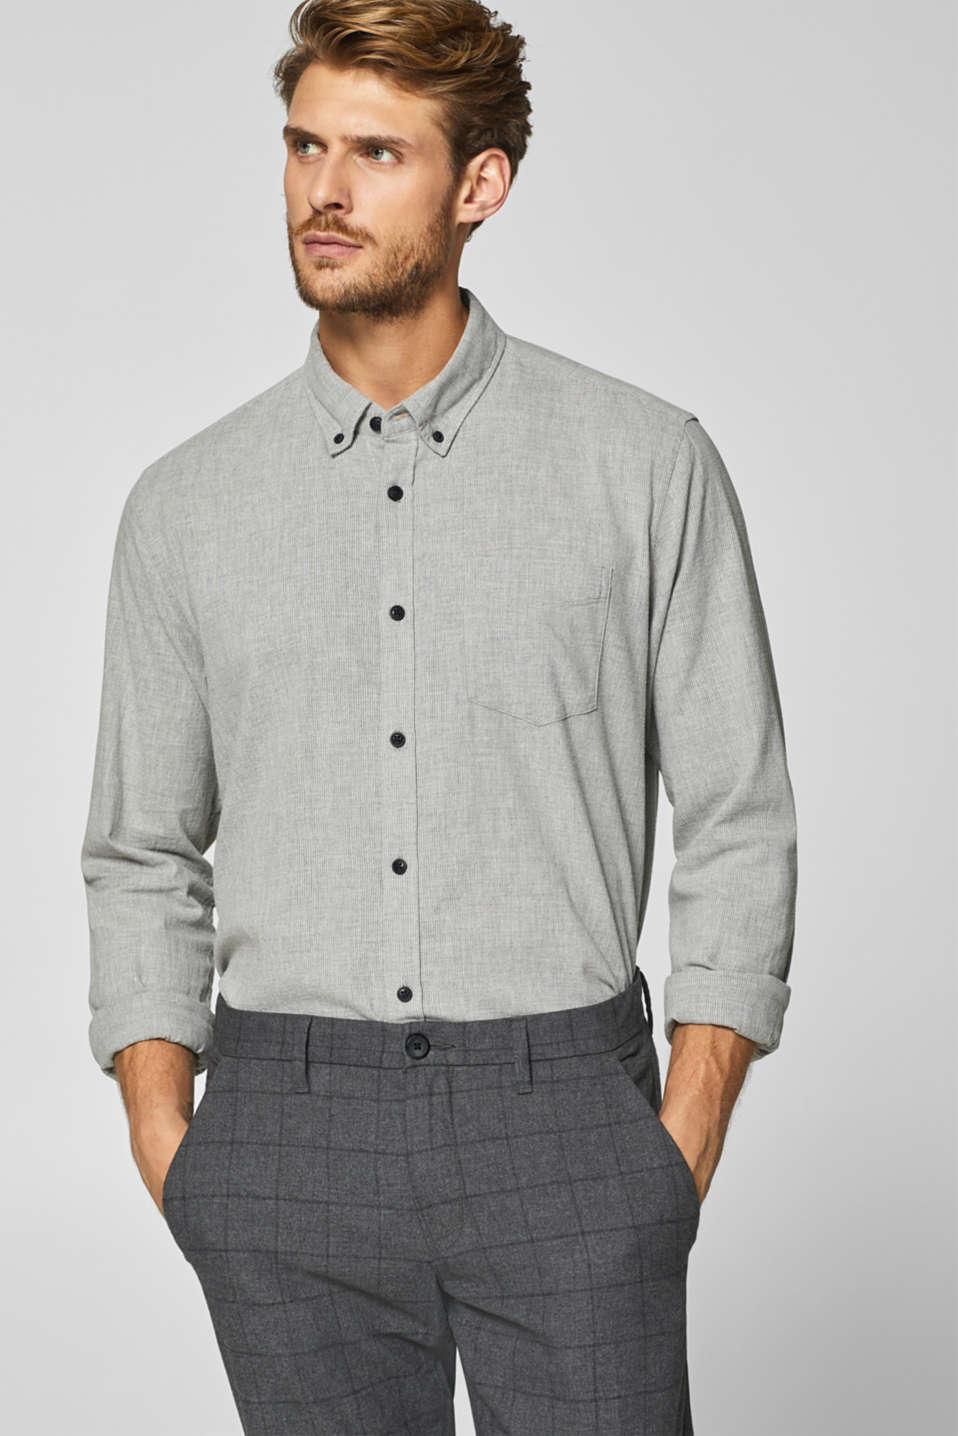 Esprit - Textured shirt with a flannel feel